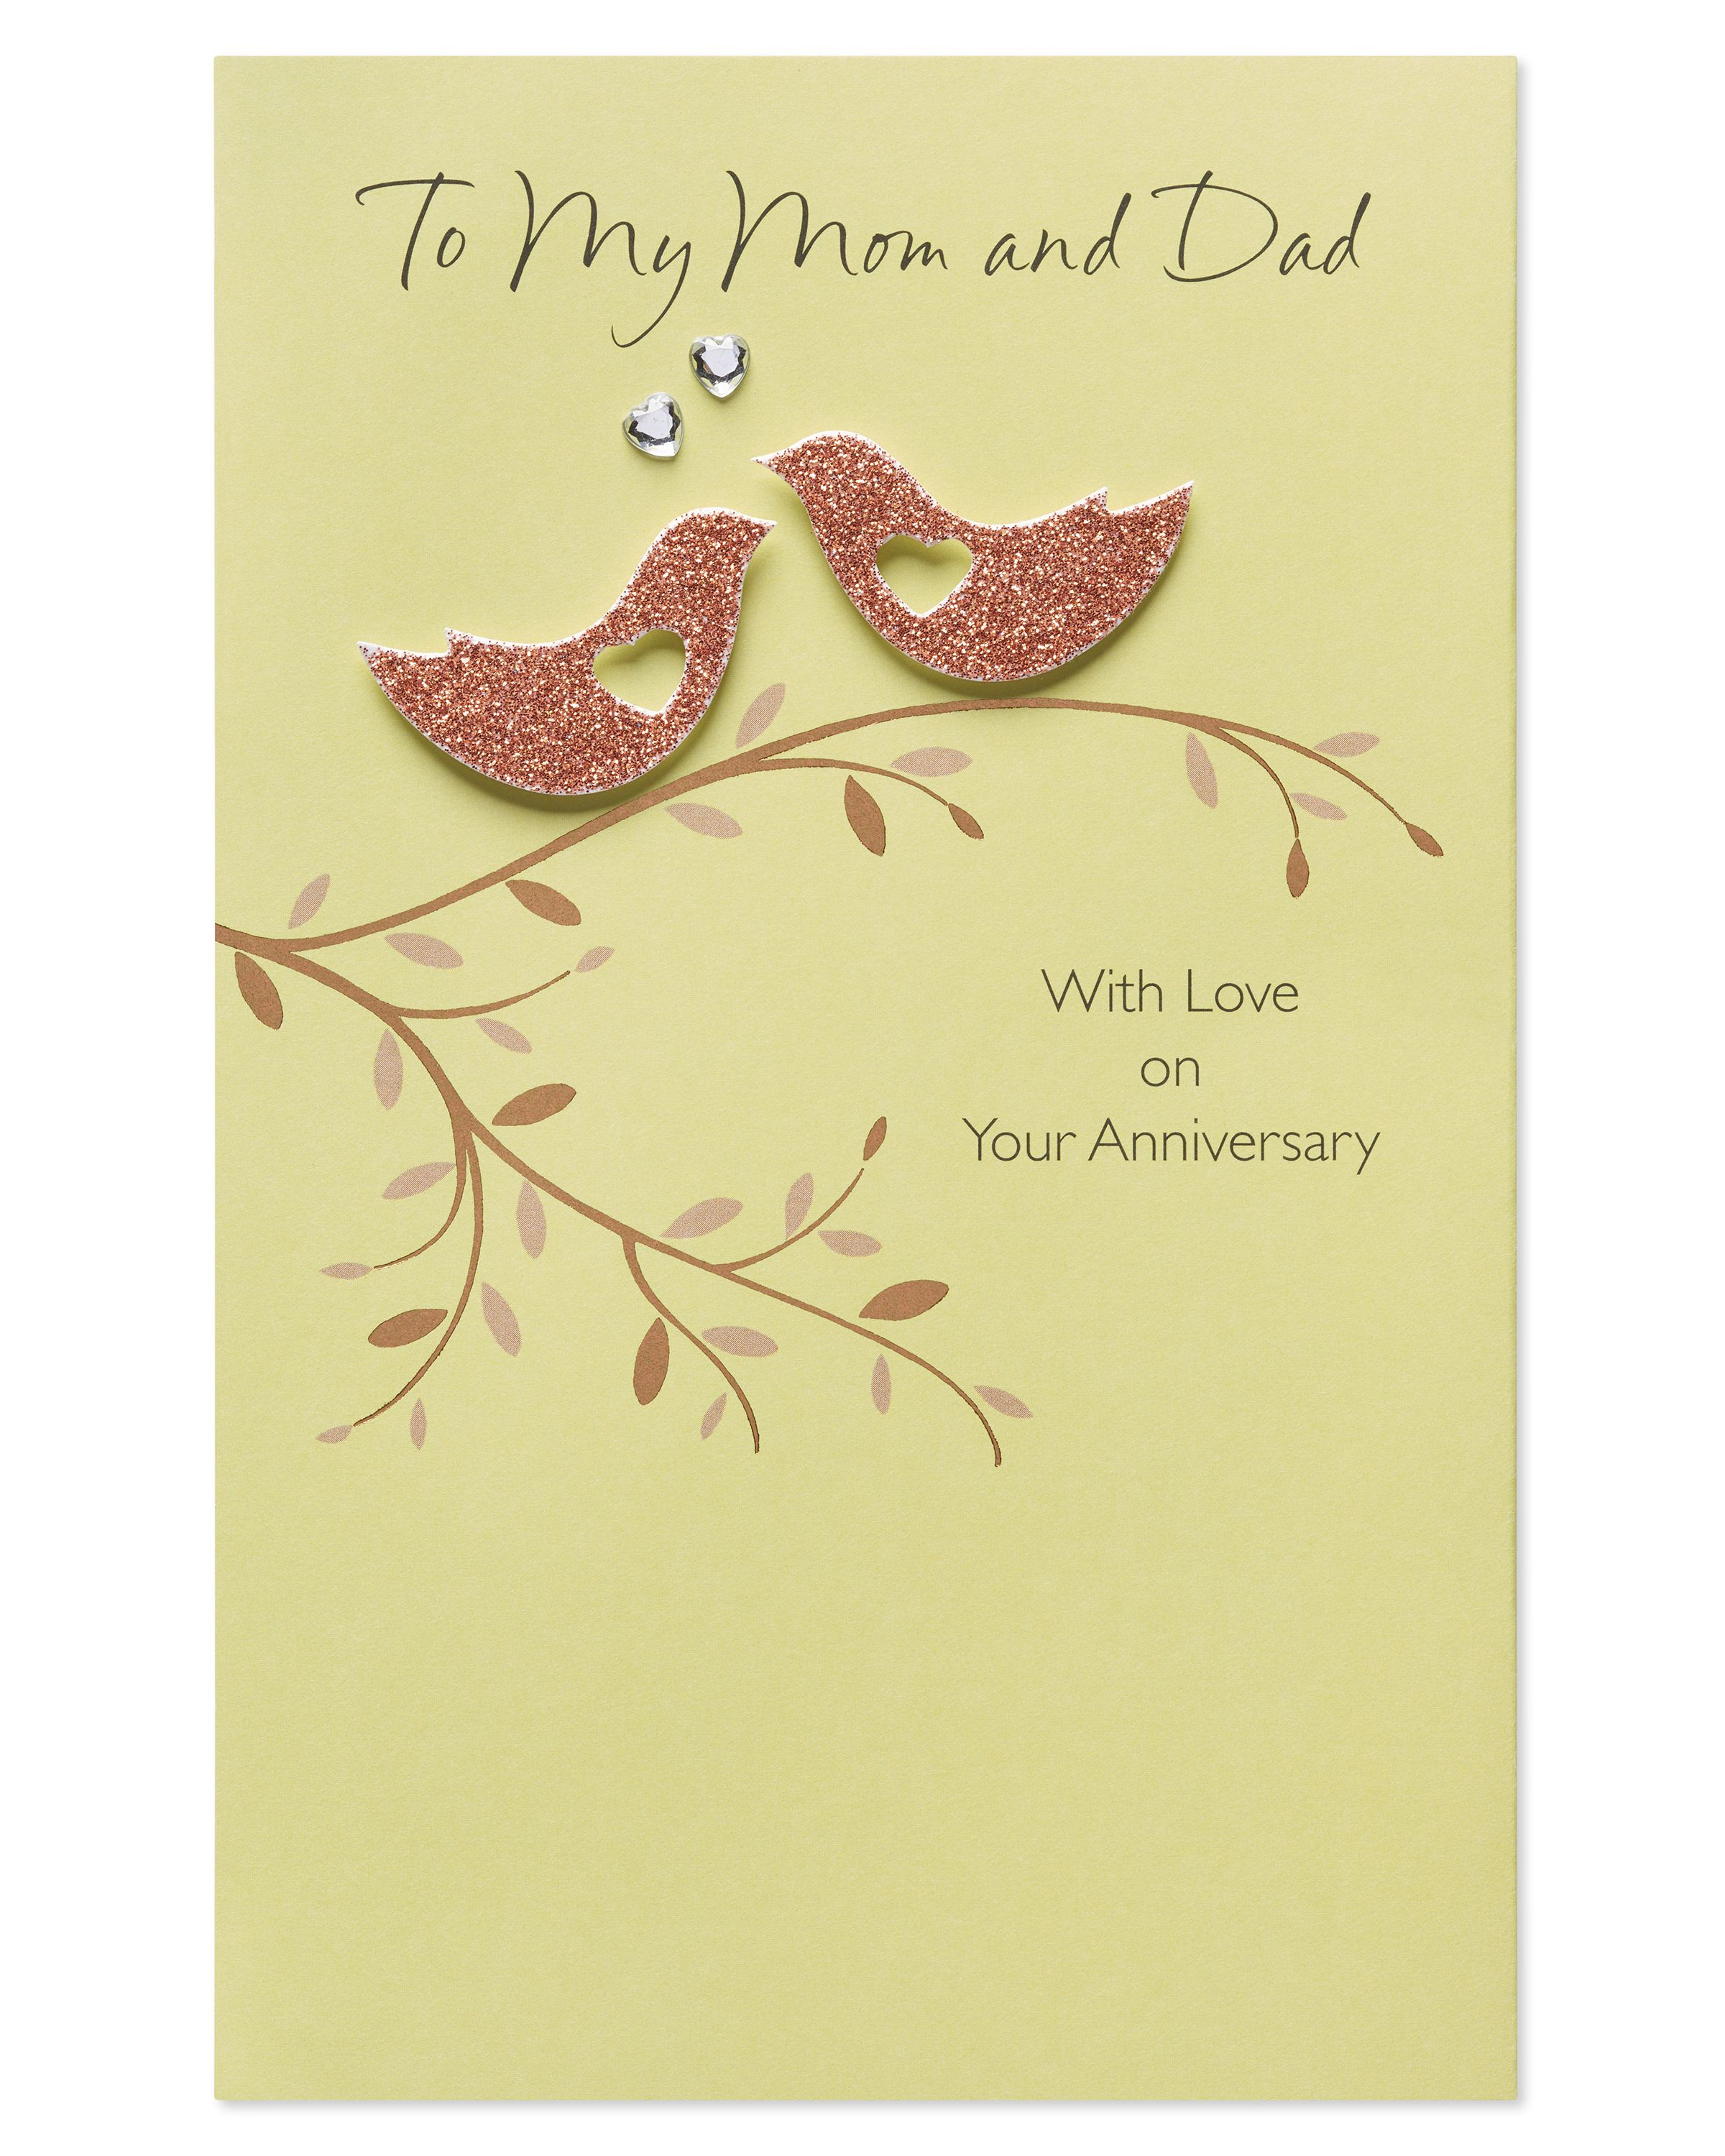 American Greetings Birds Anniversary Card For Parents With